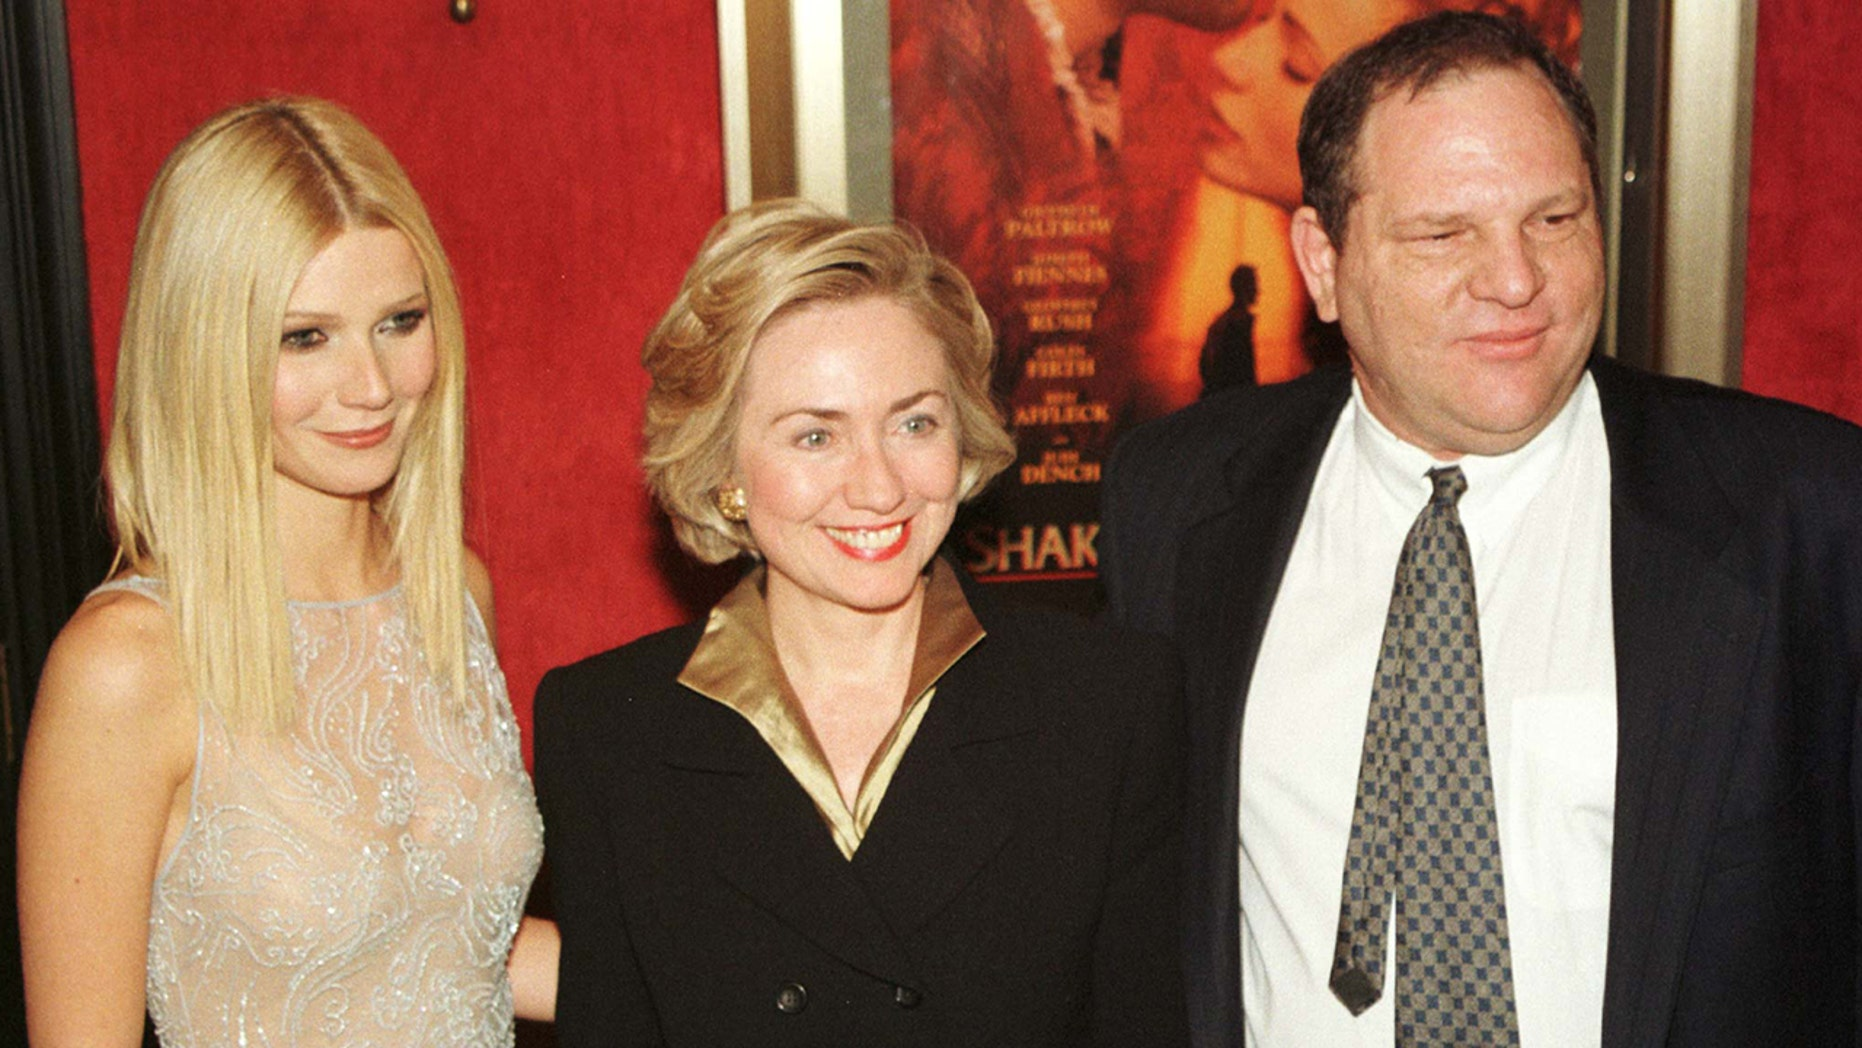 """Gwyneth Paltrow (L) poses with then-first lady Hillary Rodham Clinton (C) and former Miramax co-chairman Harvey Weinstein as they arrive for the premiere of """"Shakespeare in Love"""" in New York on December 3, 1998."""